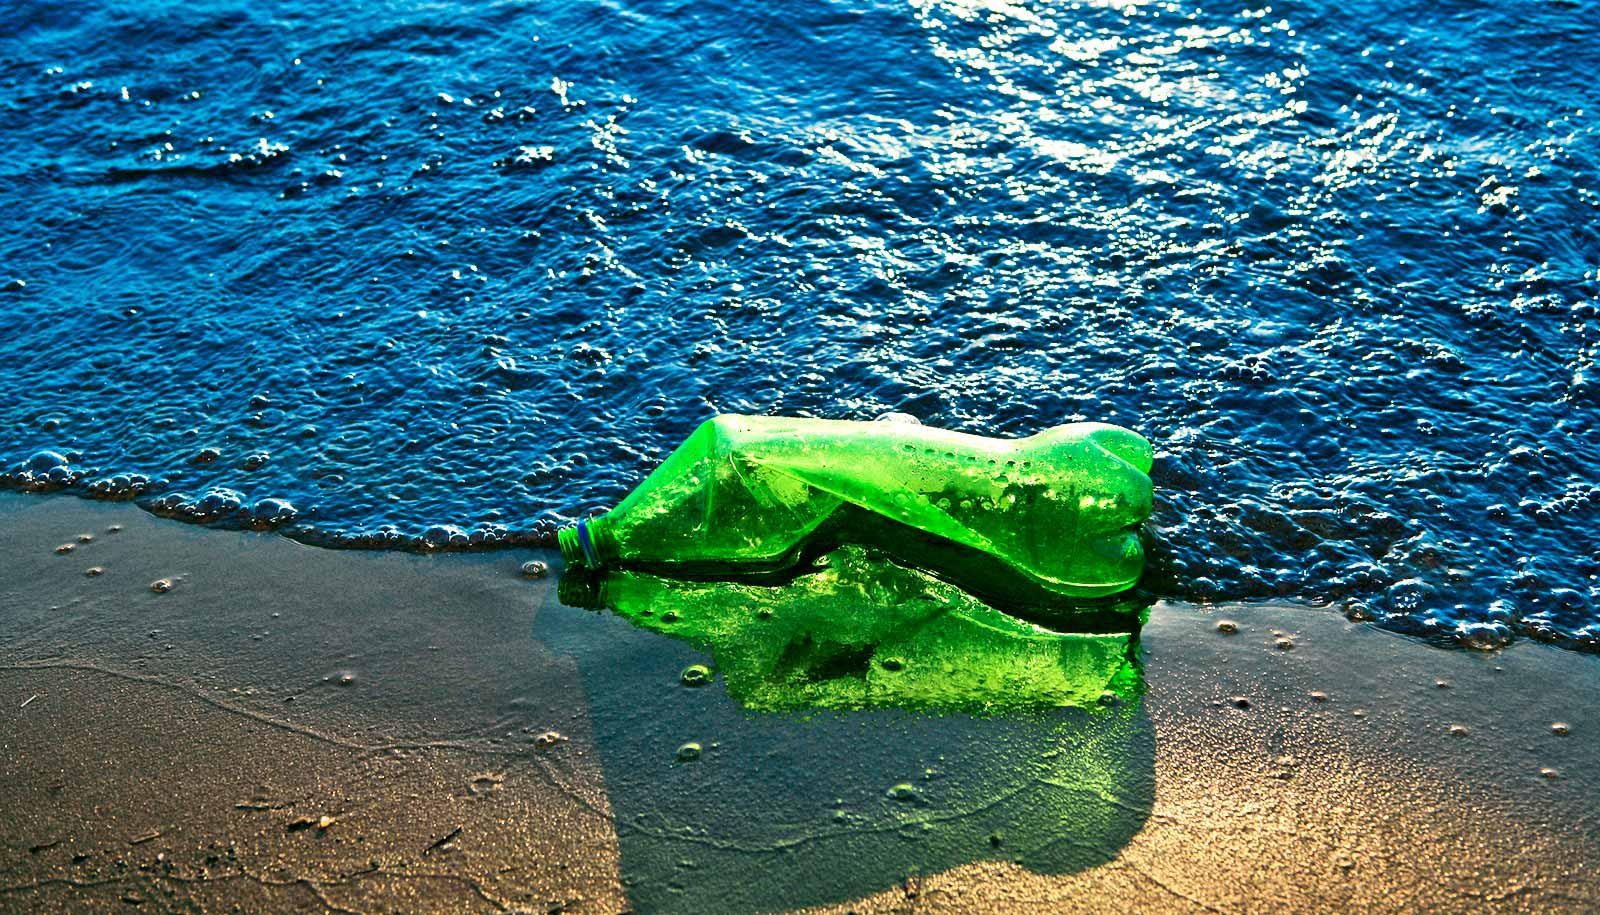 plastic bottle on the beach (plastic concept)